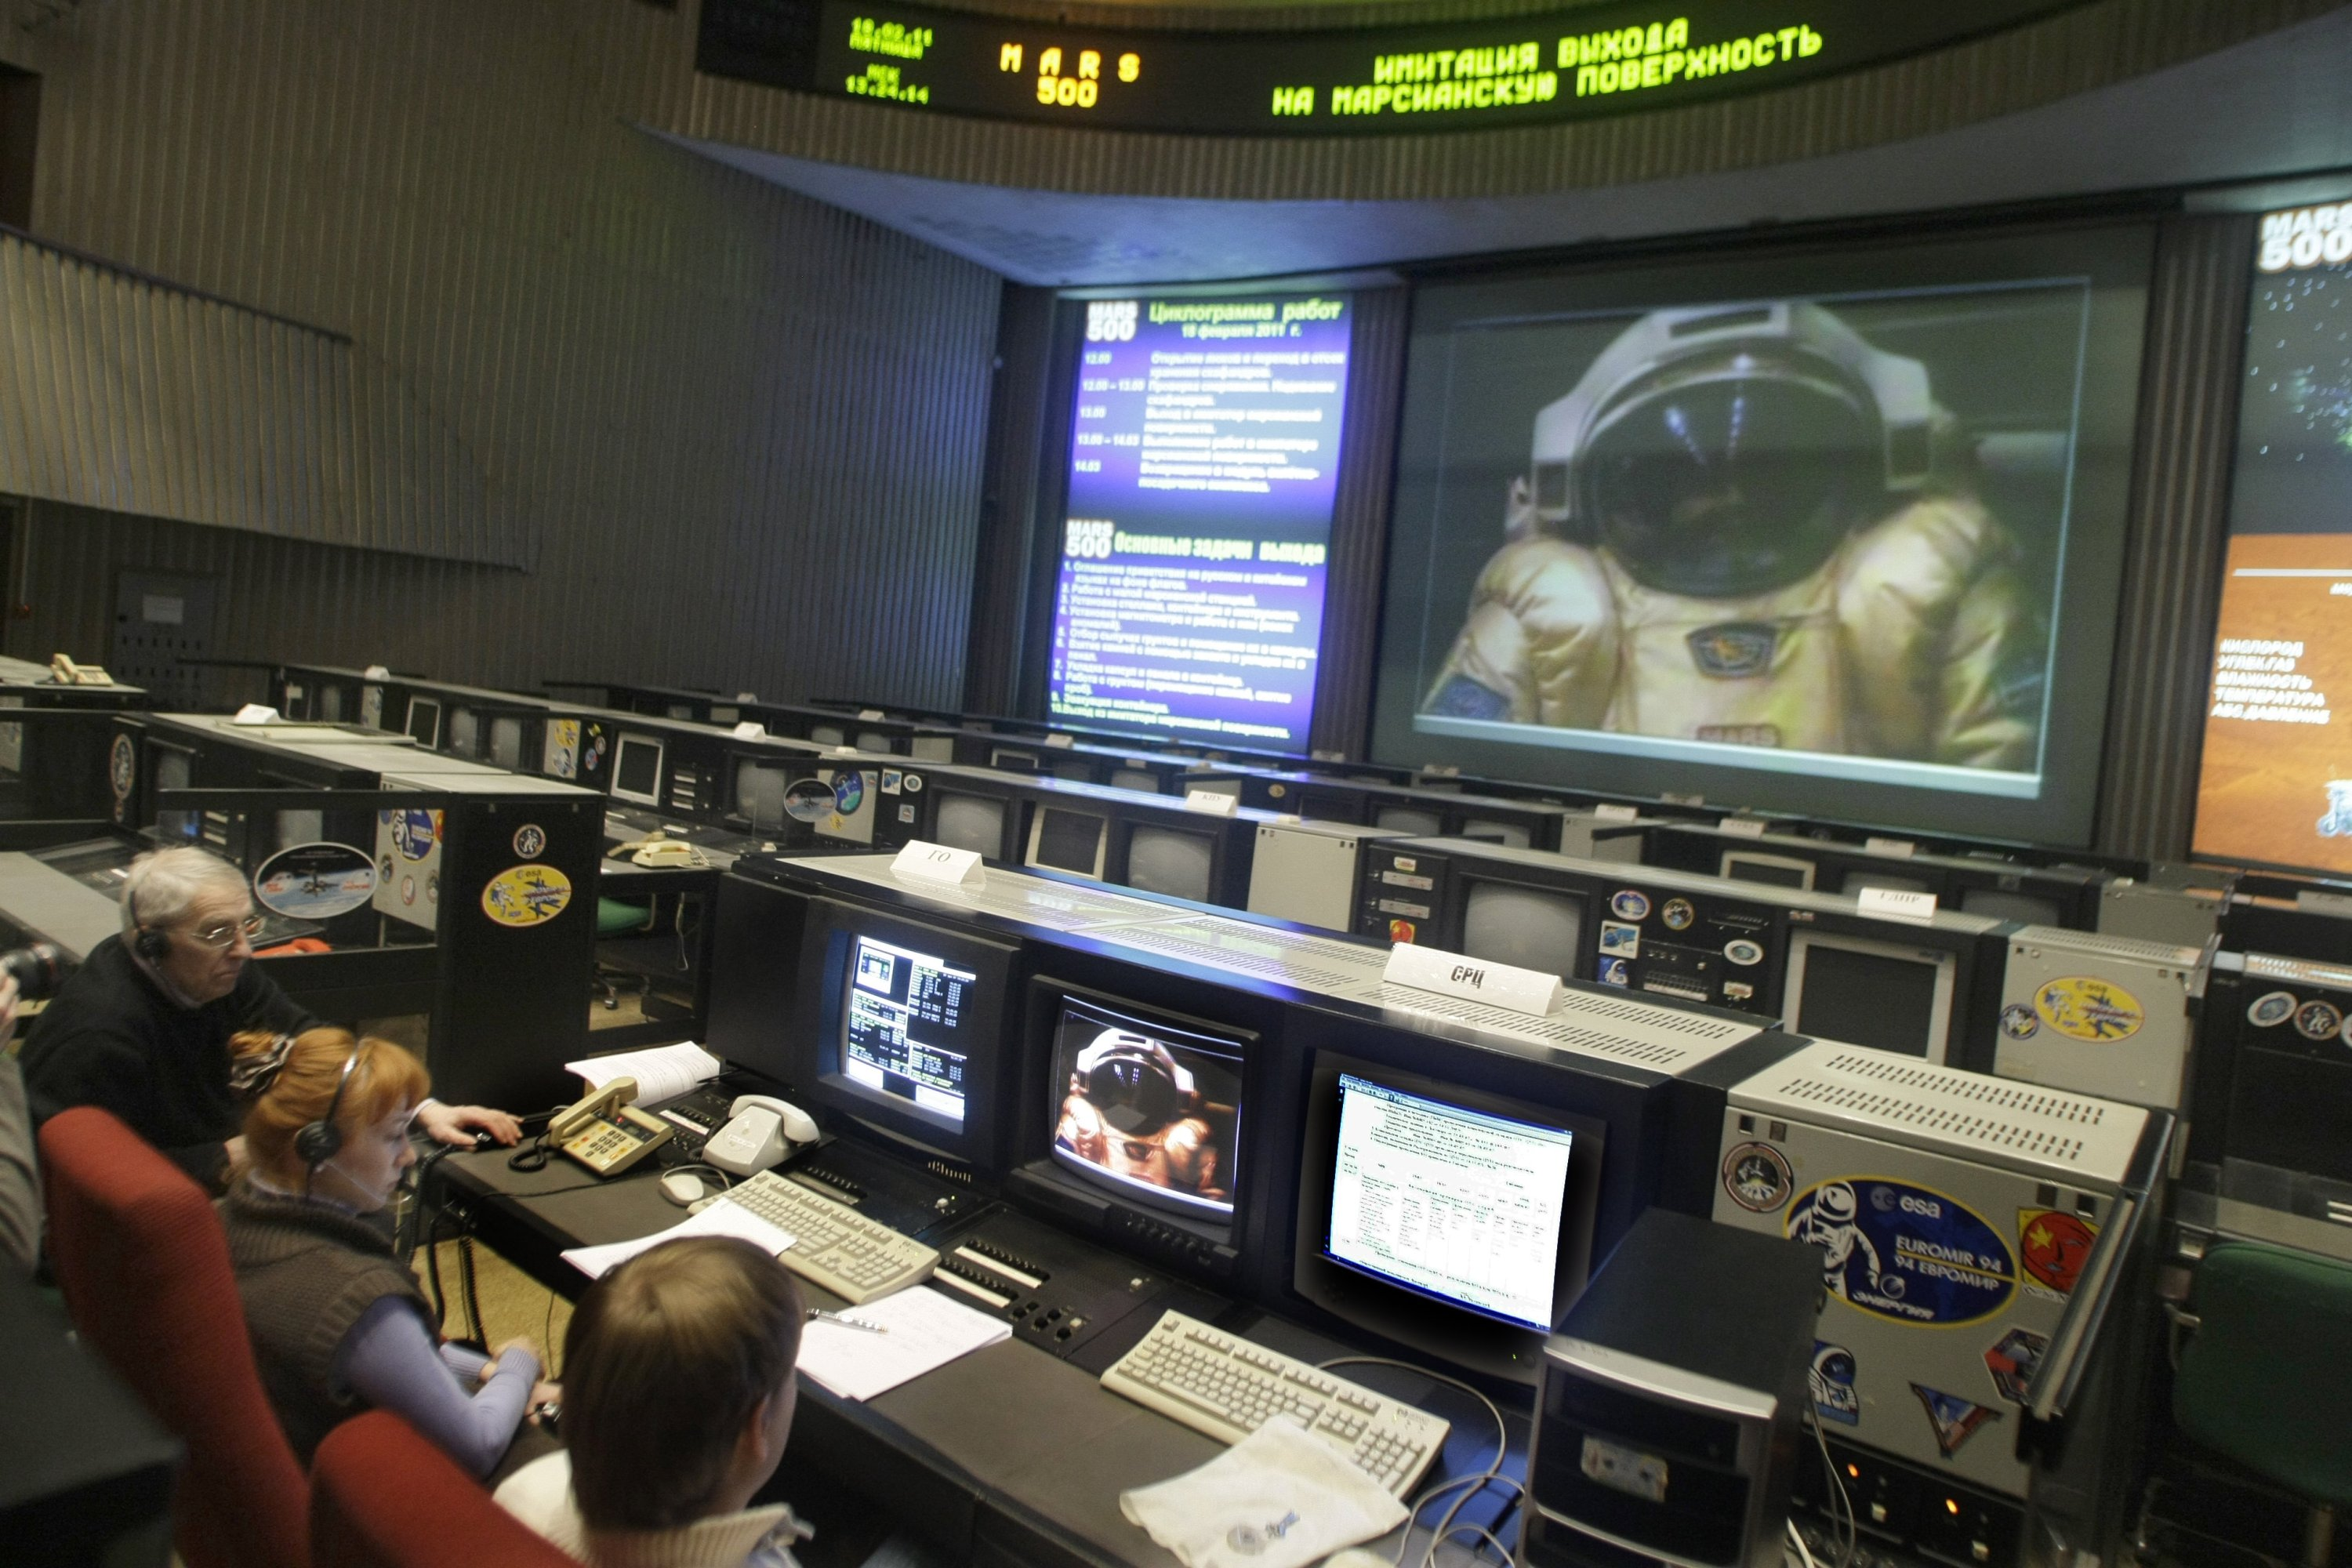 Russian space specialists sit at the controls as they simulate a landing on Mars with space crew acting out the landing, at the Mission Control Center in Korolyov, just outside Moscow, Russia, Friday, Feb. 18, 2011. (AP Photo)